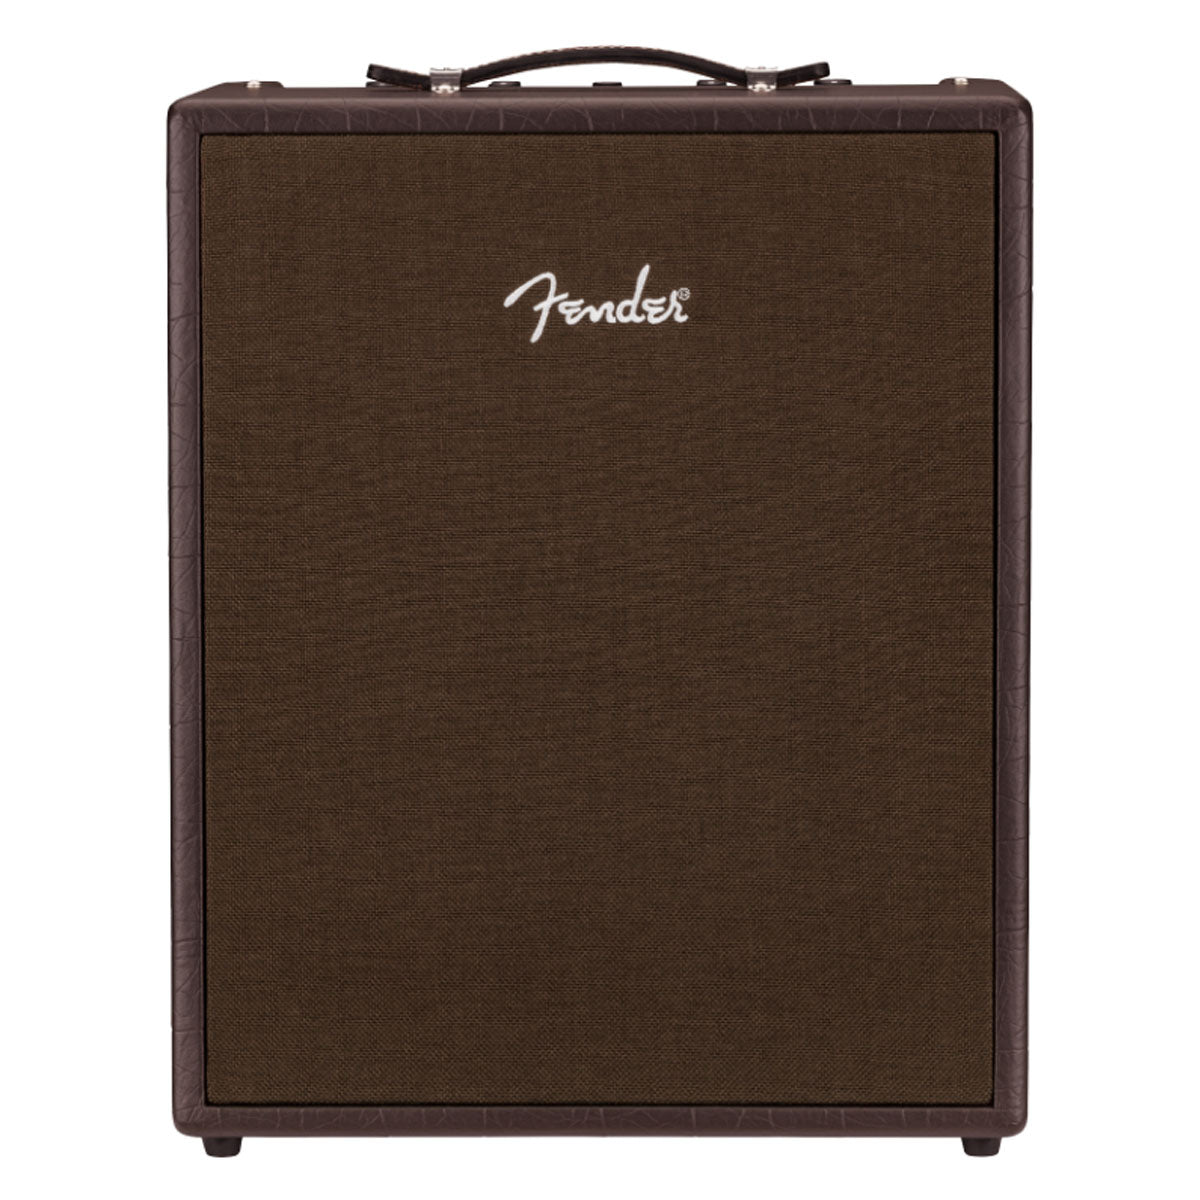 Fender Acoustic SFX II Guitar Amplifier 200w Combo Amp - 2314503000